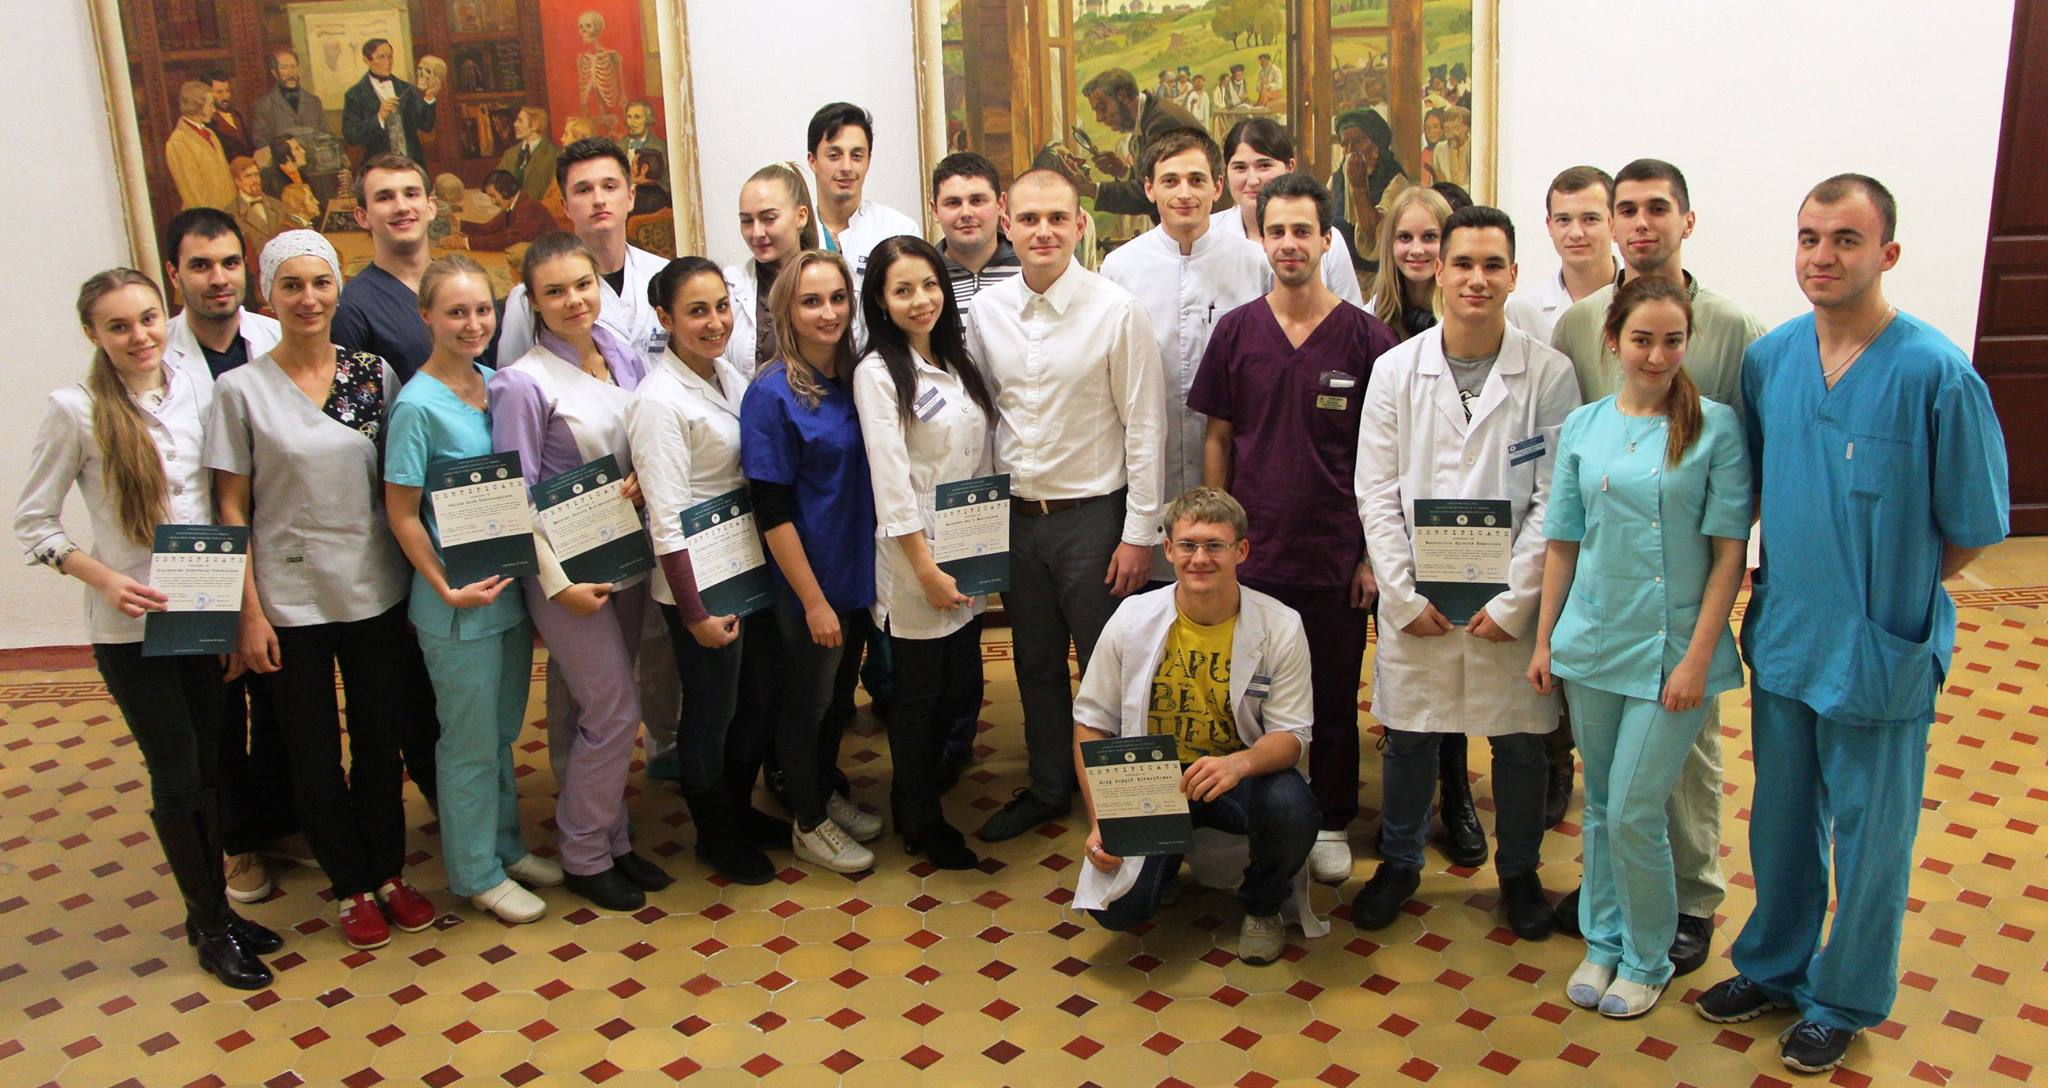 Armata Manus Basic Surgical School